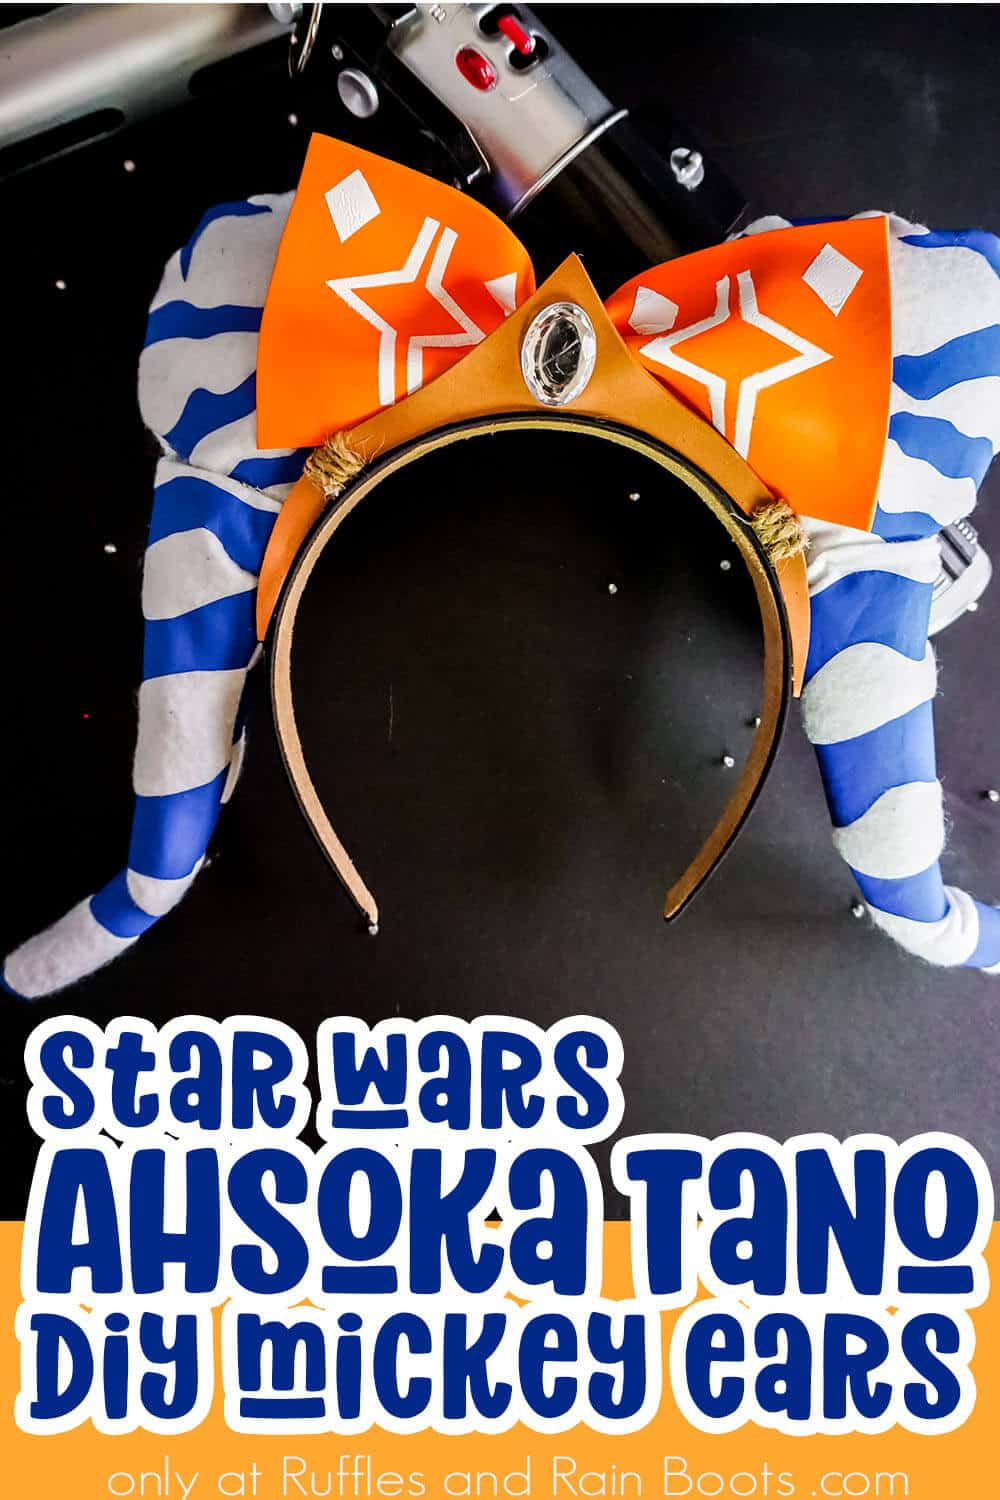 closeup of diy mickey ears for star wars galaxys edge with text which reads star wars ahsoka tano diy mickey ears